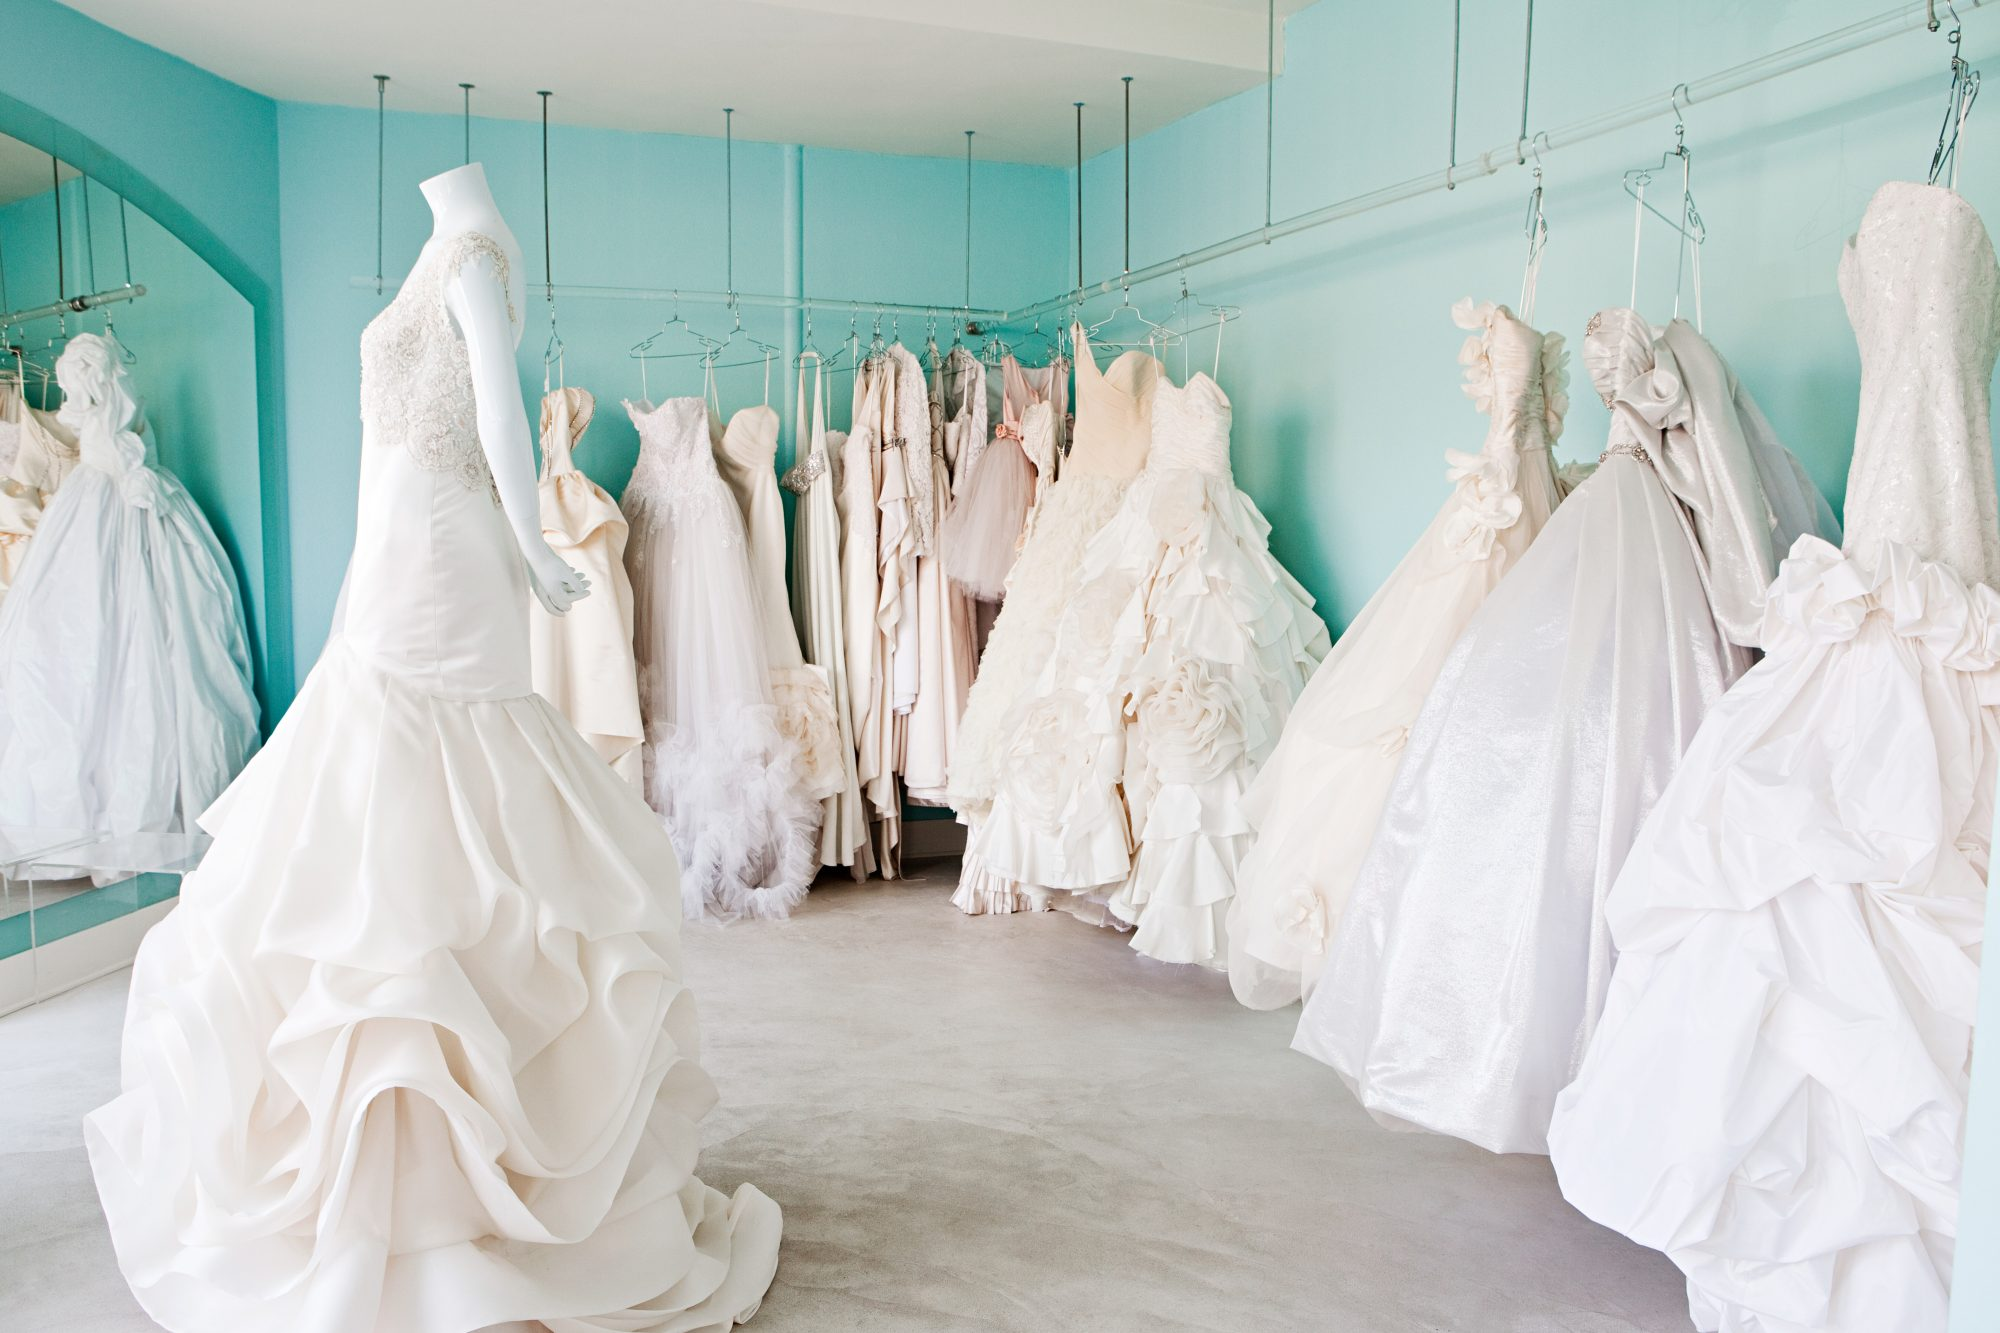 Wedding Dresses in Room